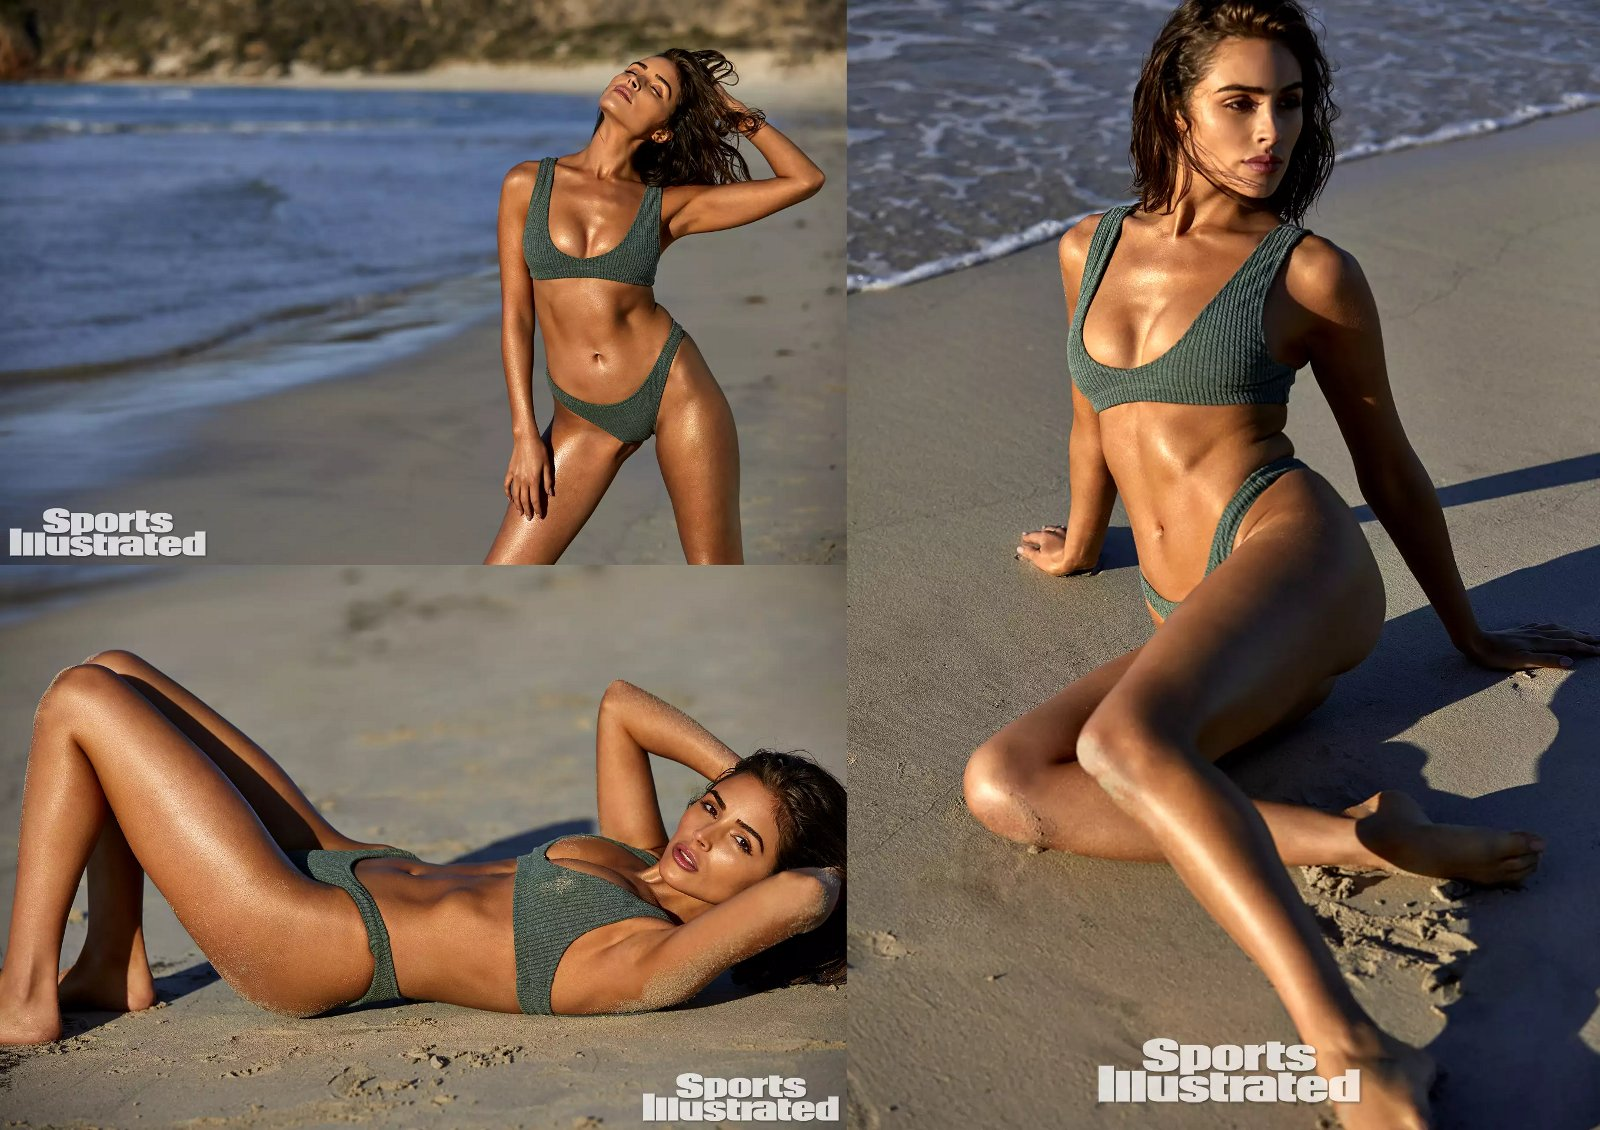 Sports Illustrated 2019 Swimsuit Model Olivia Culpo